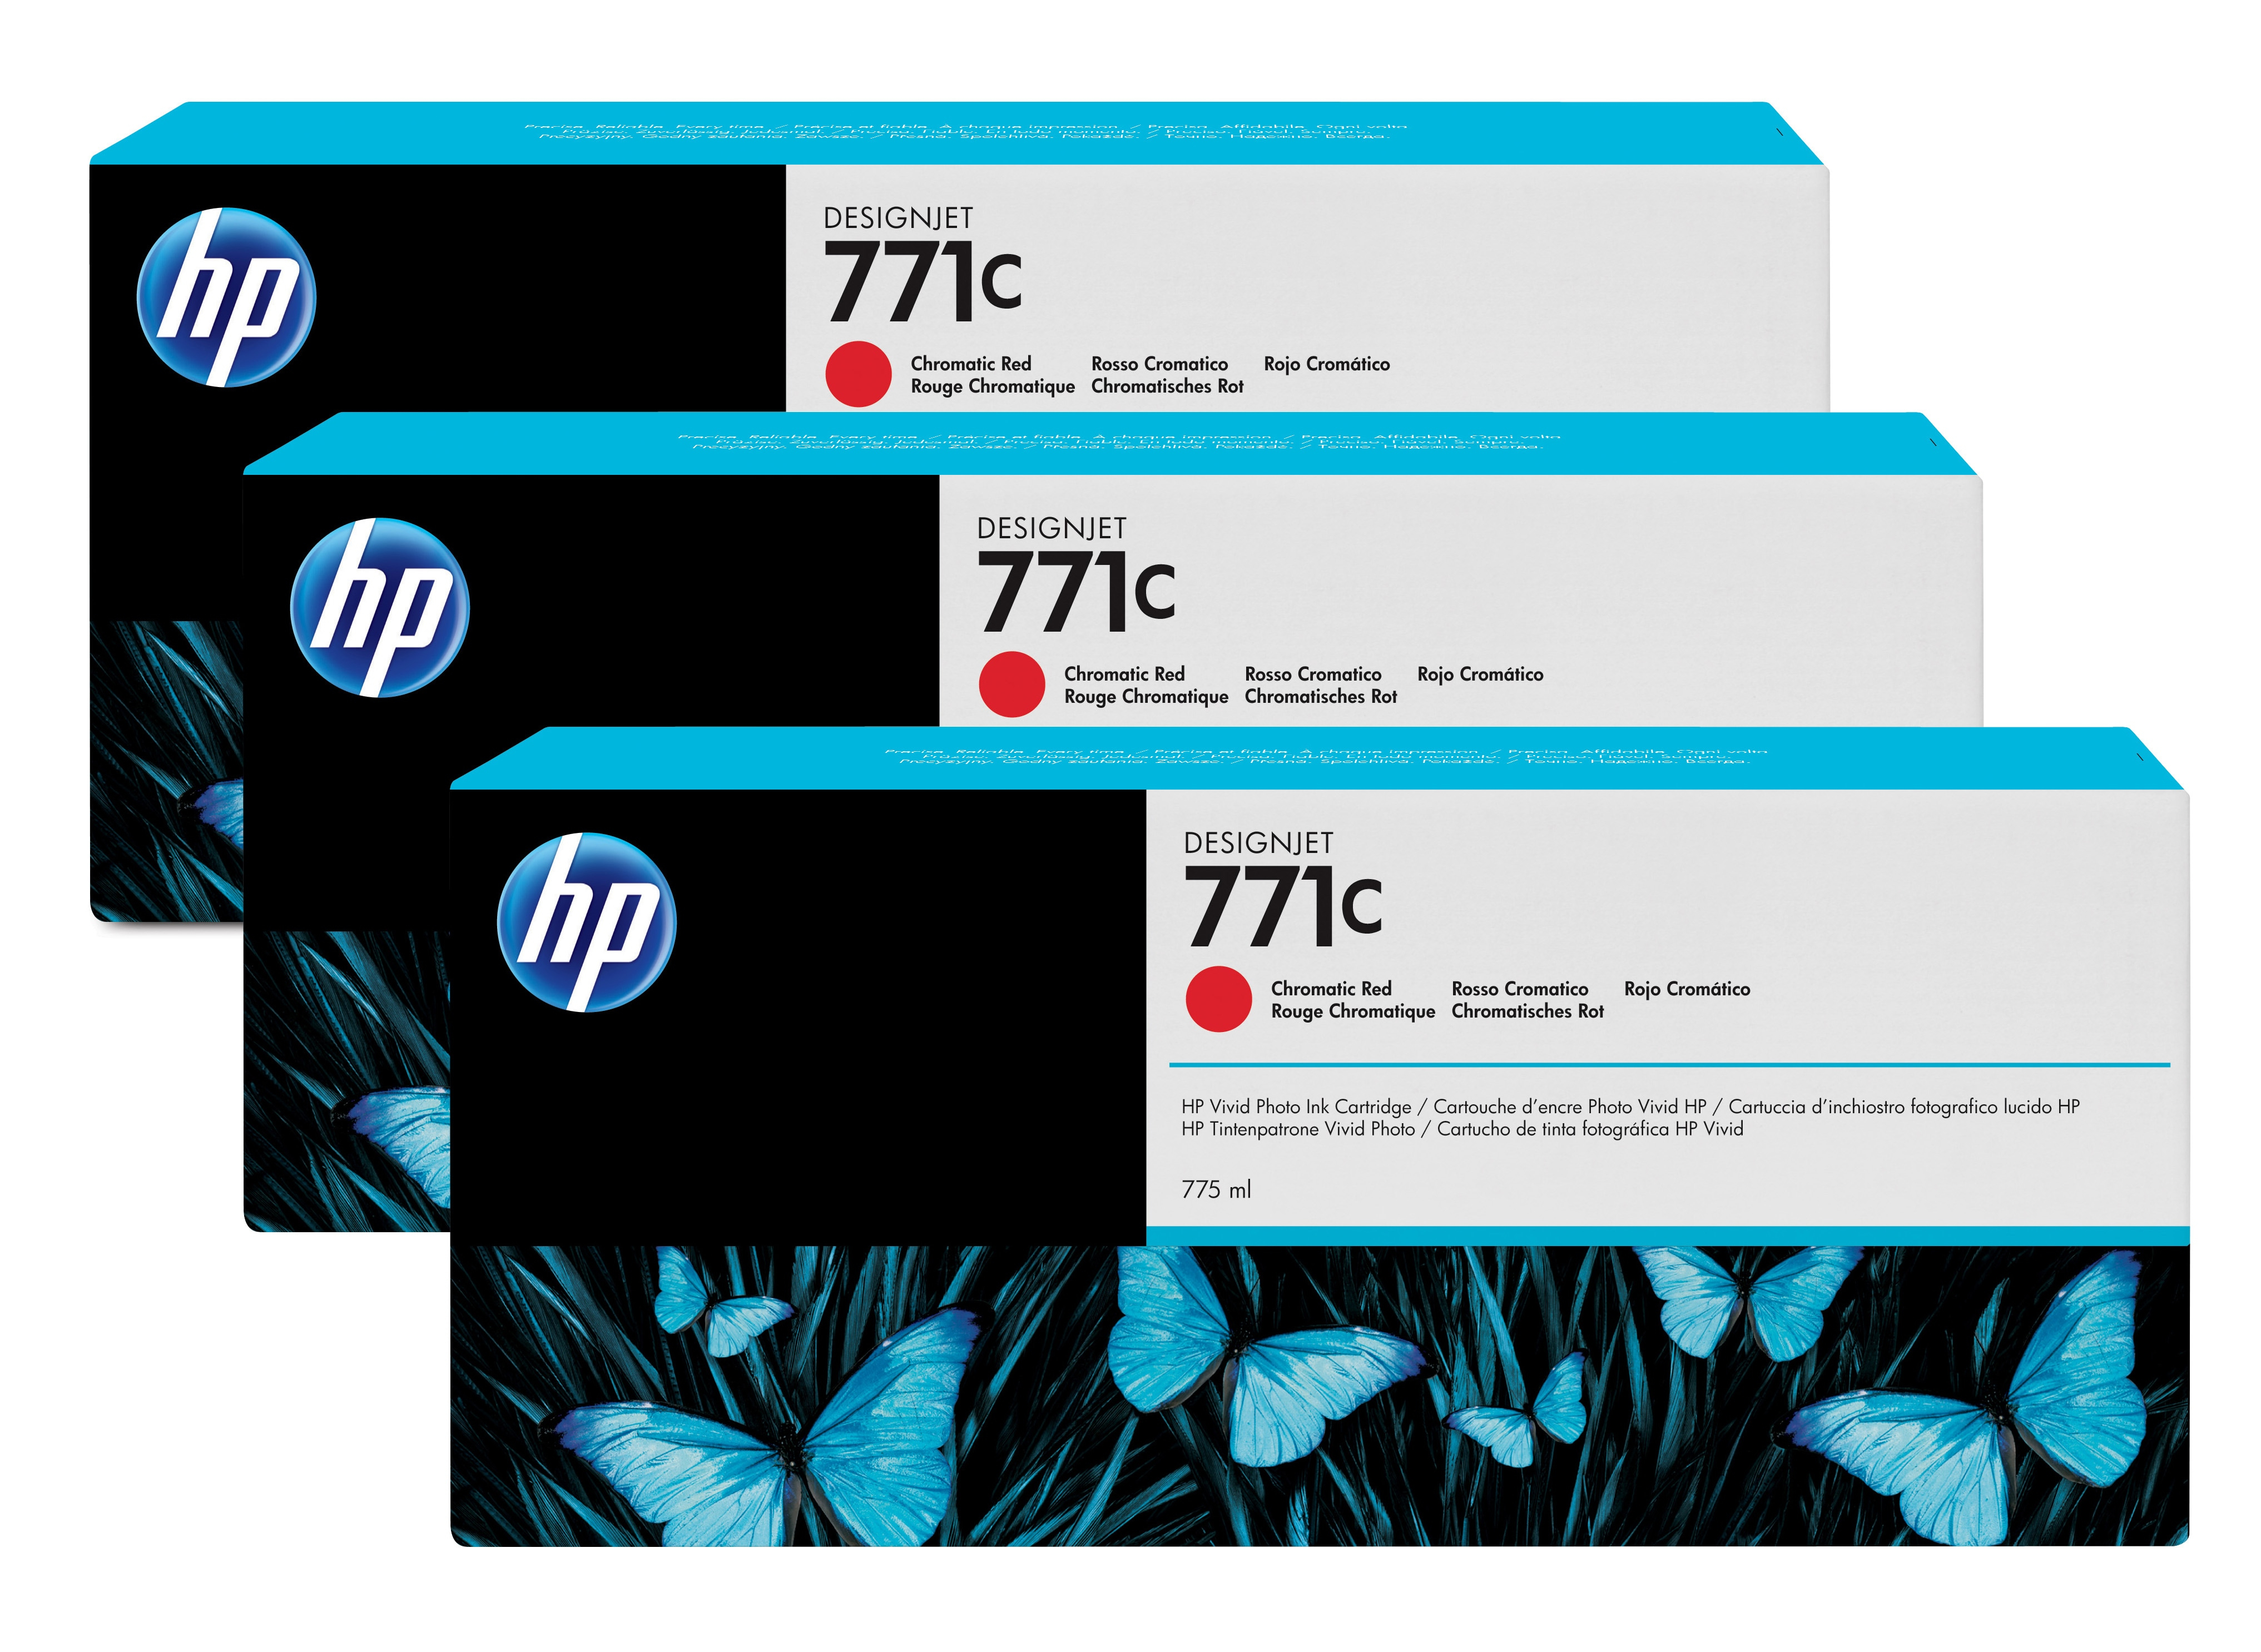 HP No. 771C 3 Ink Multipack - Chromatic Red B6y32a